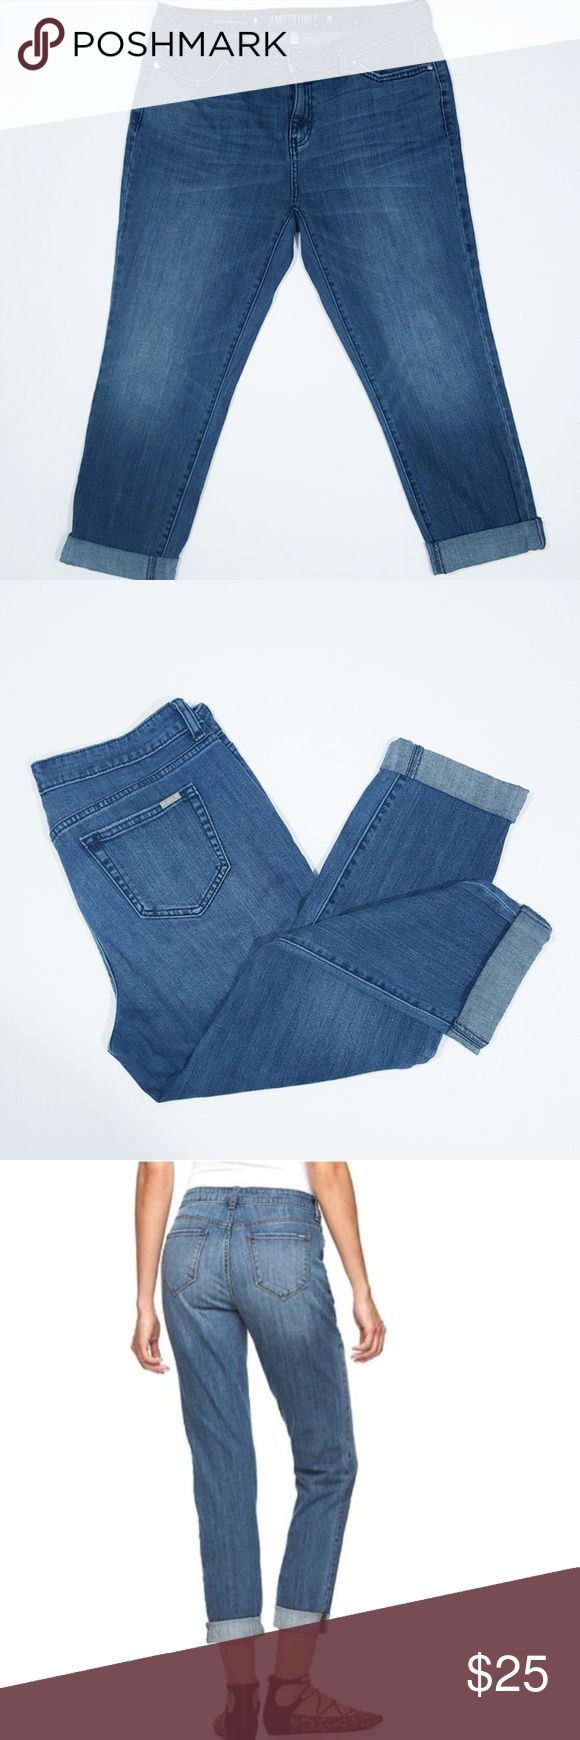 Jennifer Lopez Boyfriend Crop Jeans size 8 Jennifer Lopez Boyfriend Crop Jeans size 8 EUC They don't even look like they have been worn before Jennifer Lopez Jeans Ankle & Cropped